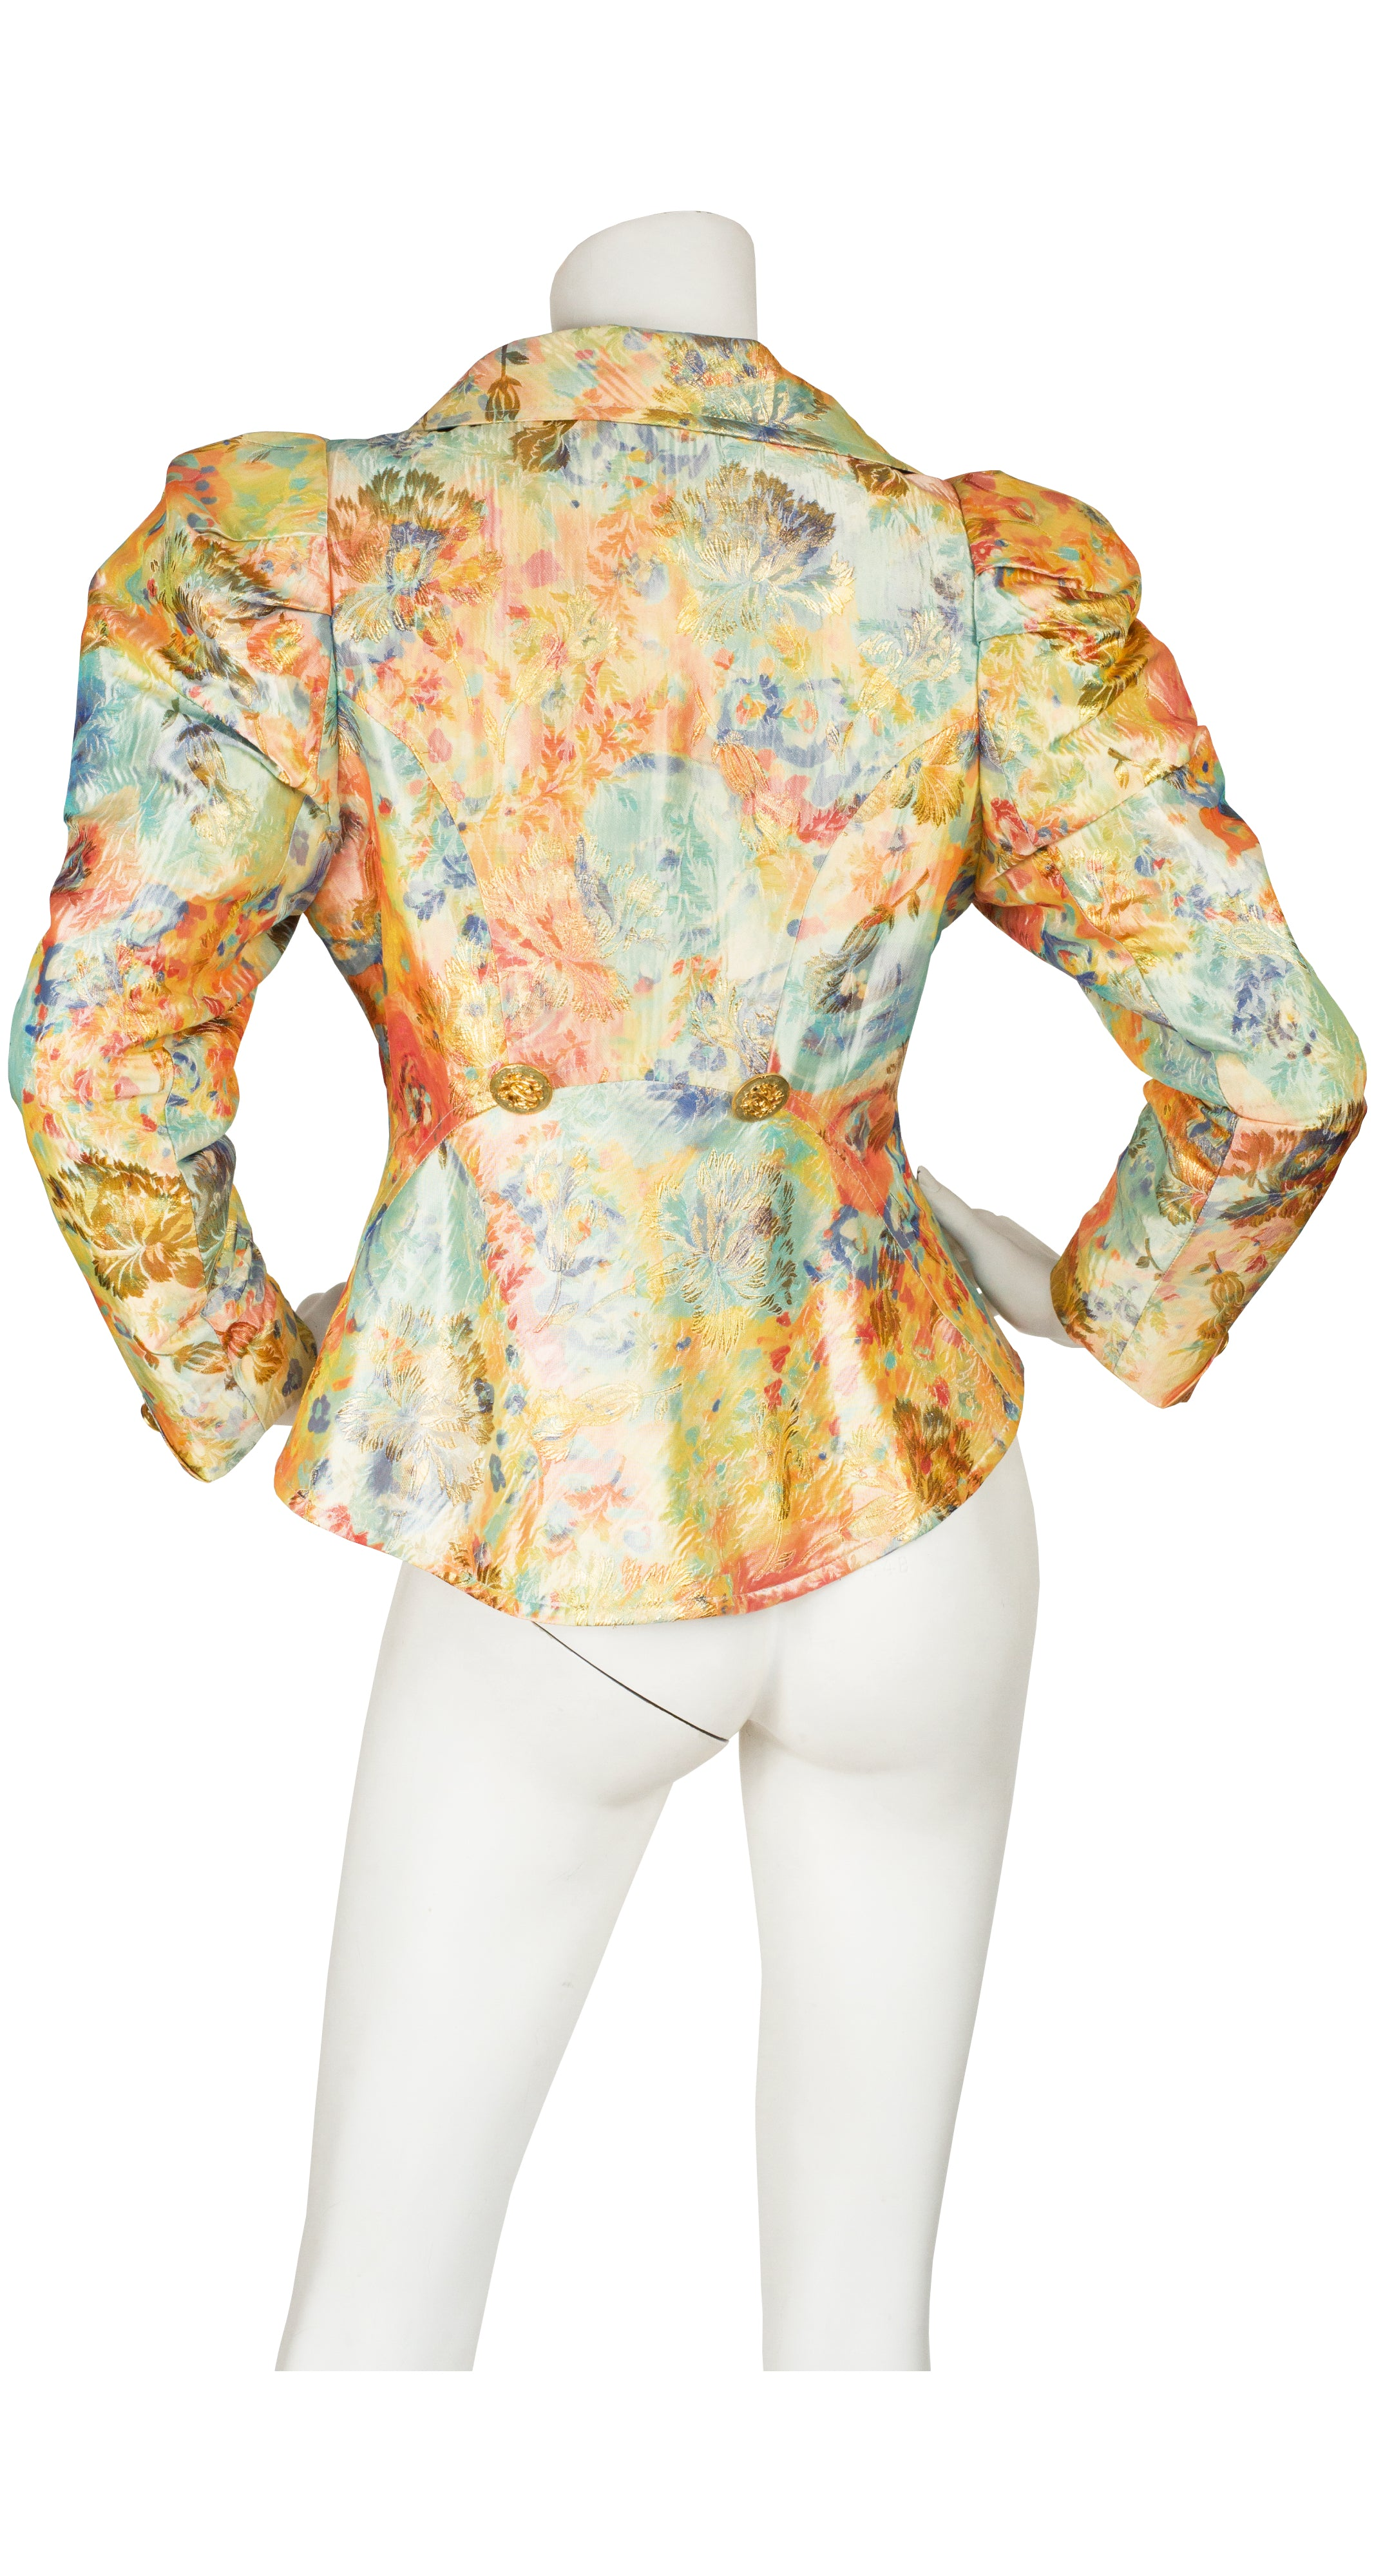 1990s Multi-Color Metallic Brocade Puff Shoulder Jacket